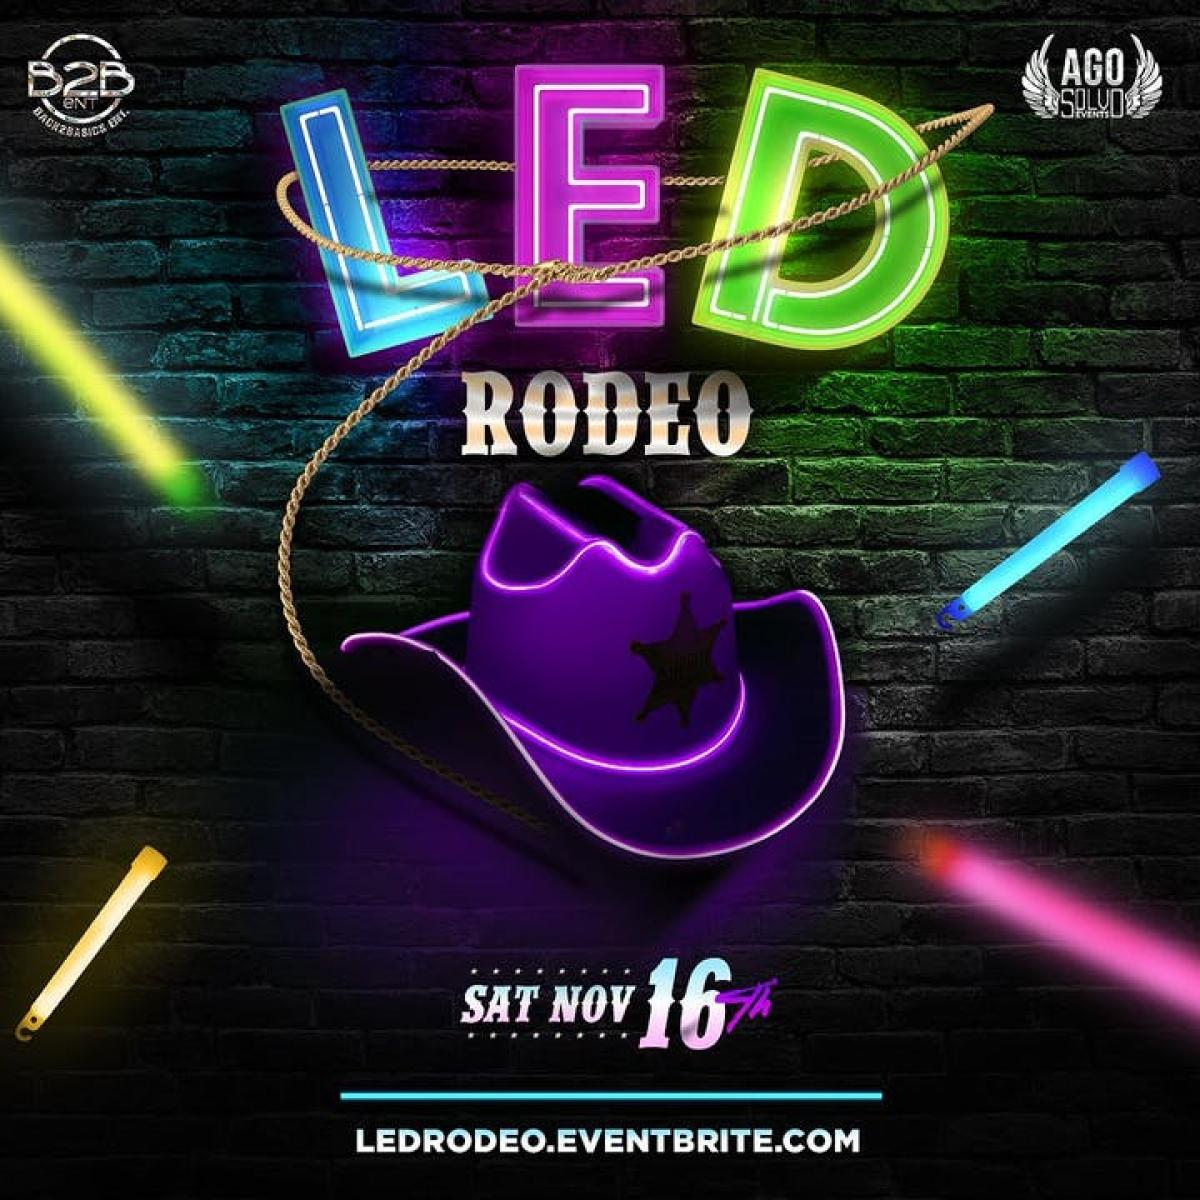 LED Rodeo flyer or graphic.